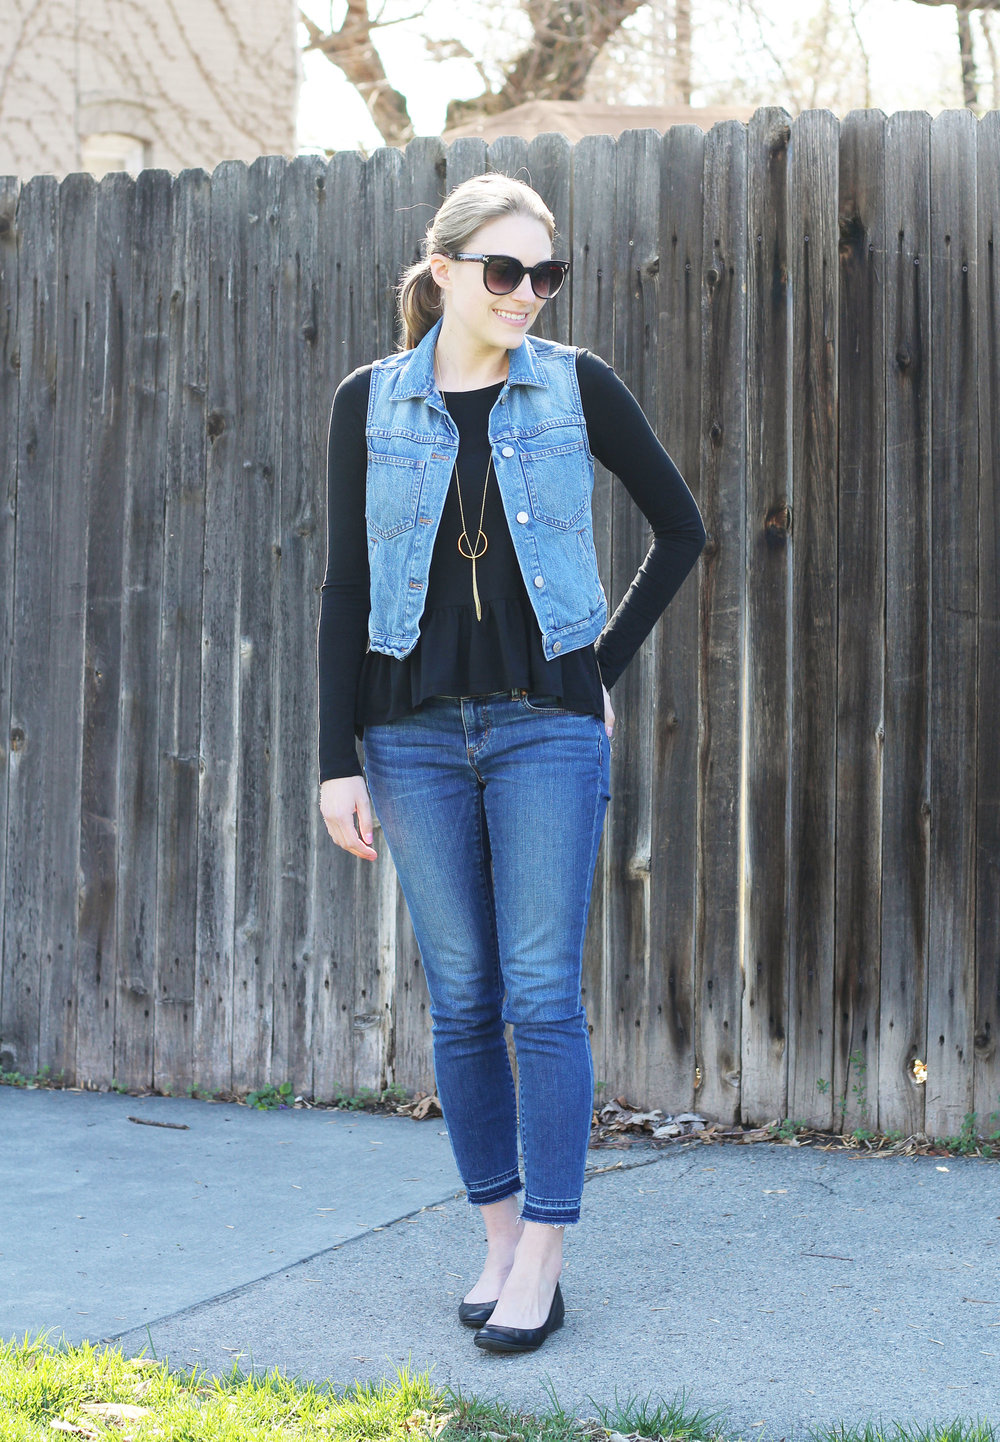 Double denim outfit: denim vest + skinny jeans with peplum top — Cotton Cashmere Cat Hair